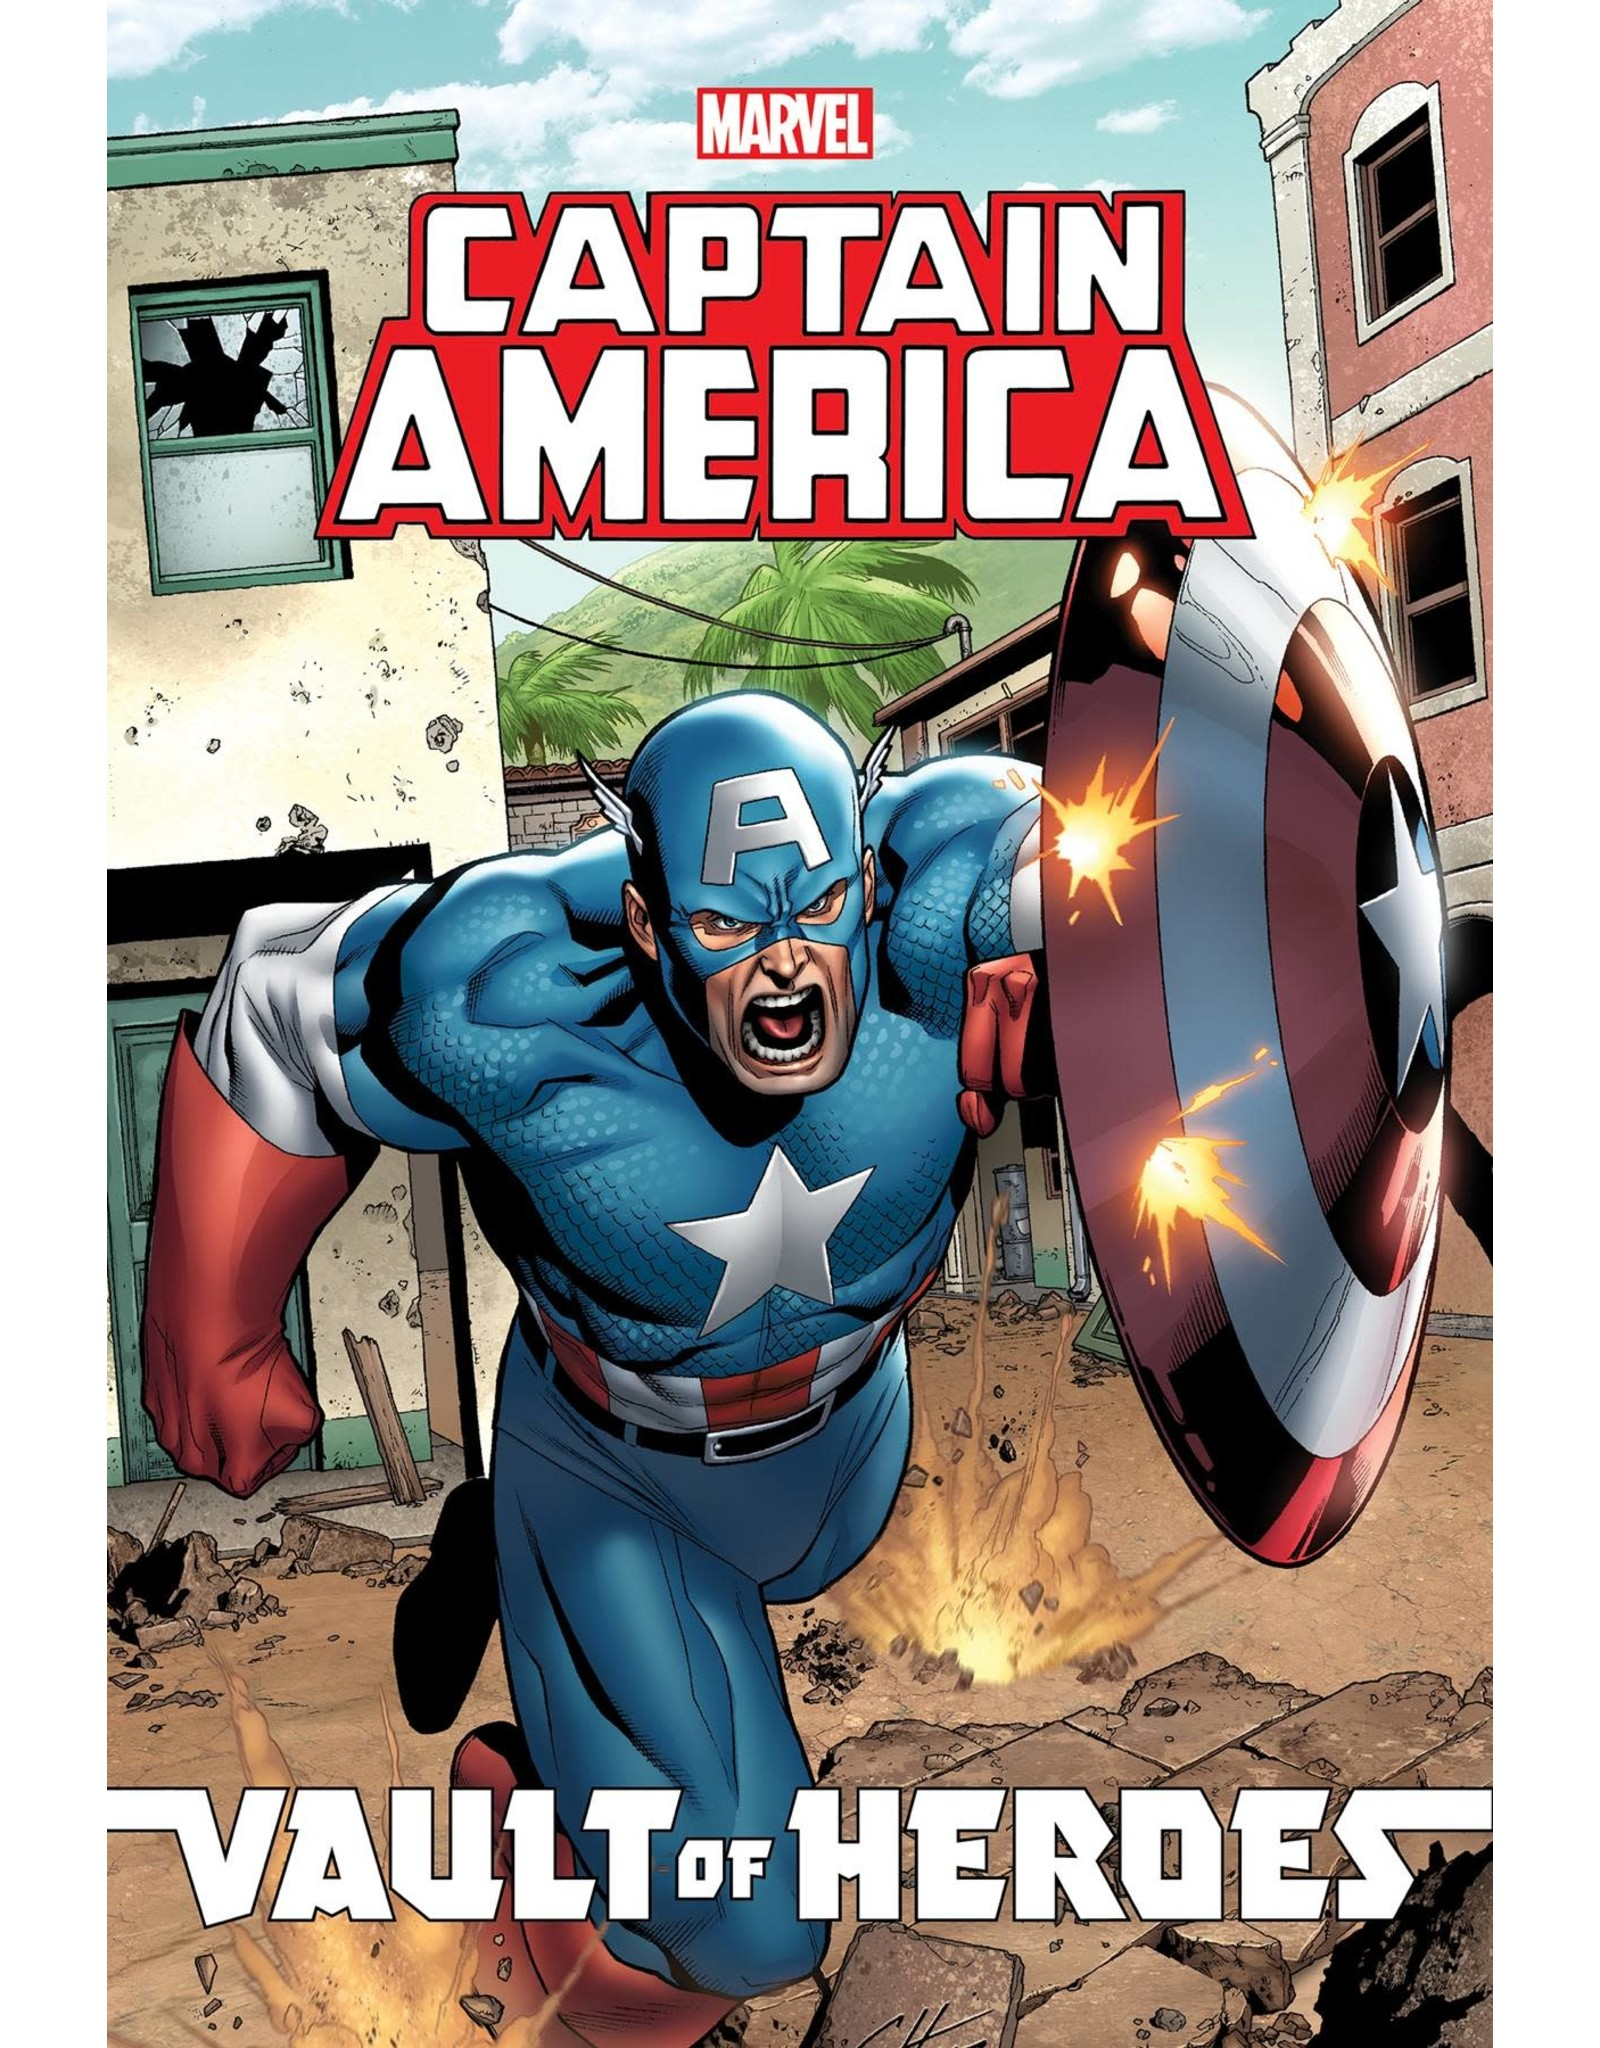 IDW PUBLISHING MARVEL VAULT OF HEROES CAPTAIN AMERICA TP